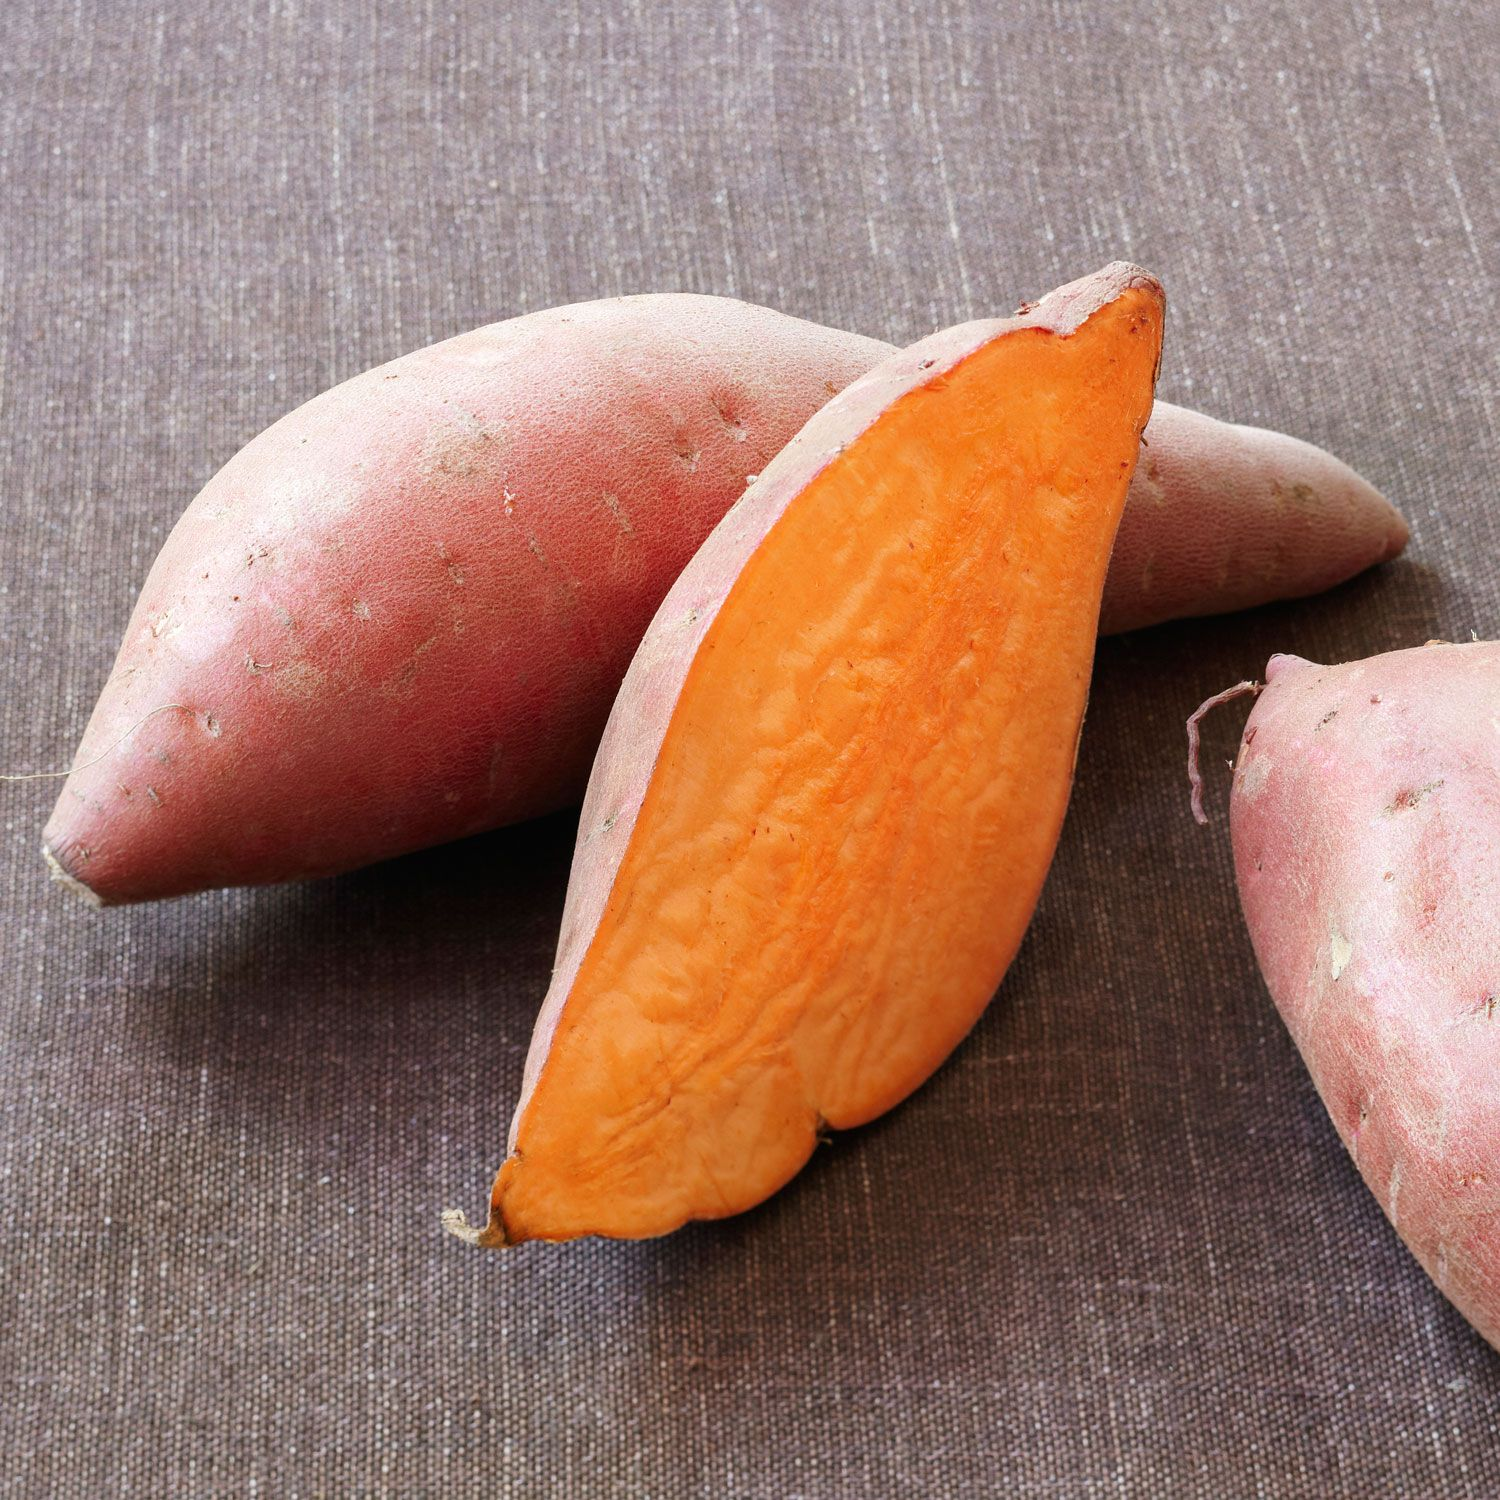 are sweet potatoes good to eat when trying to lose weight